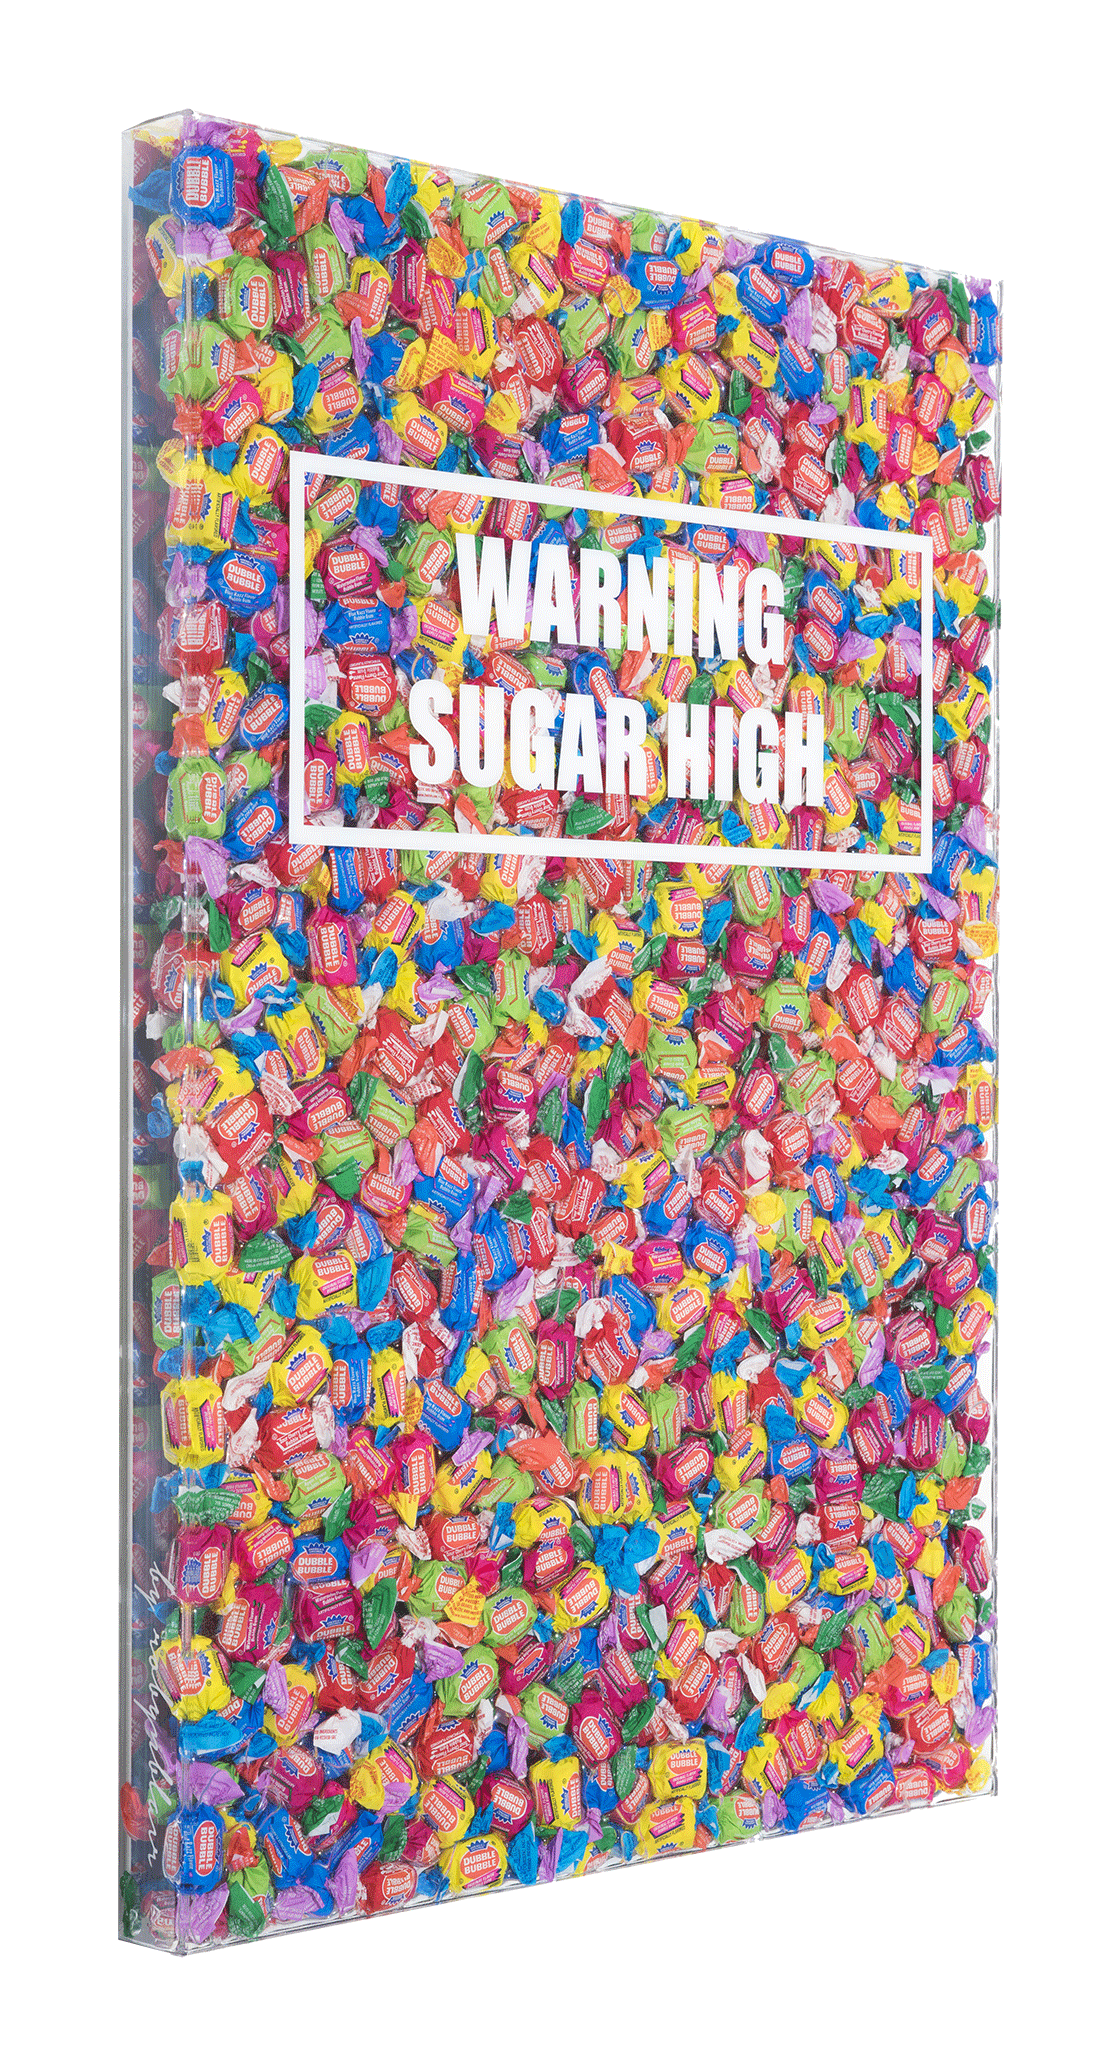 Warning Sugar High